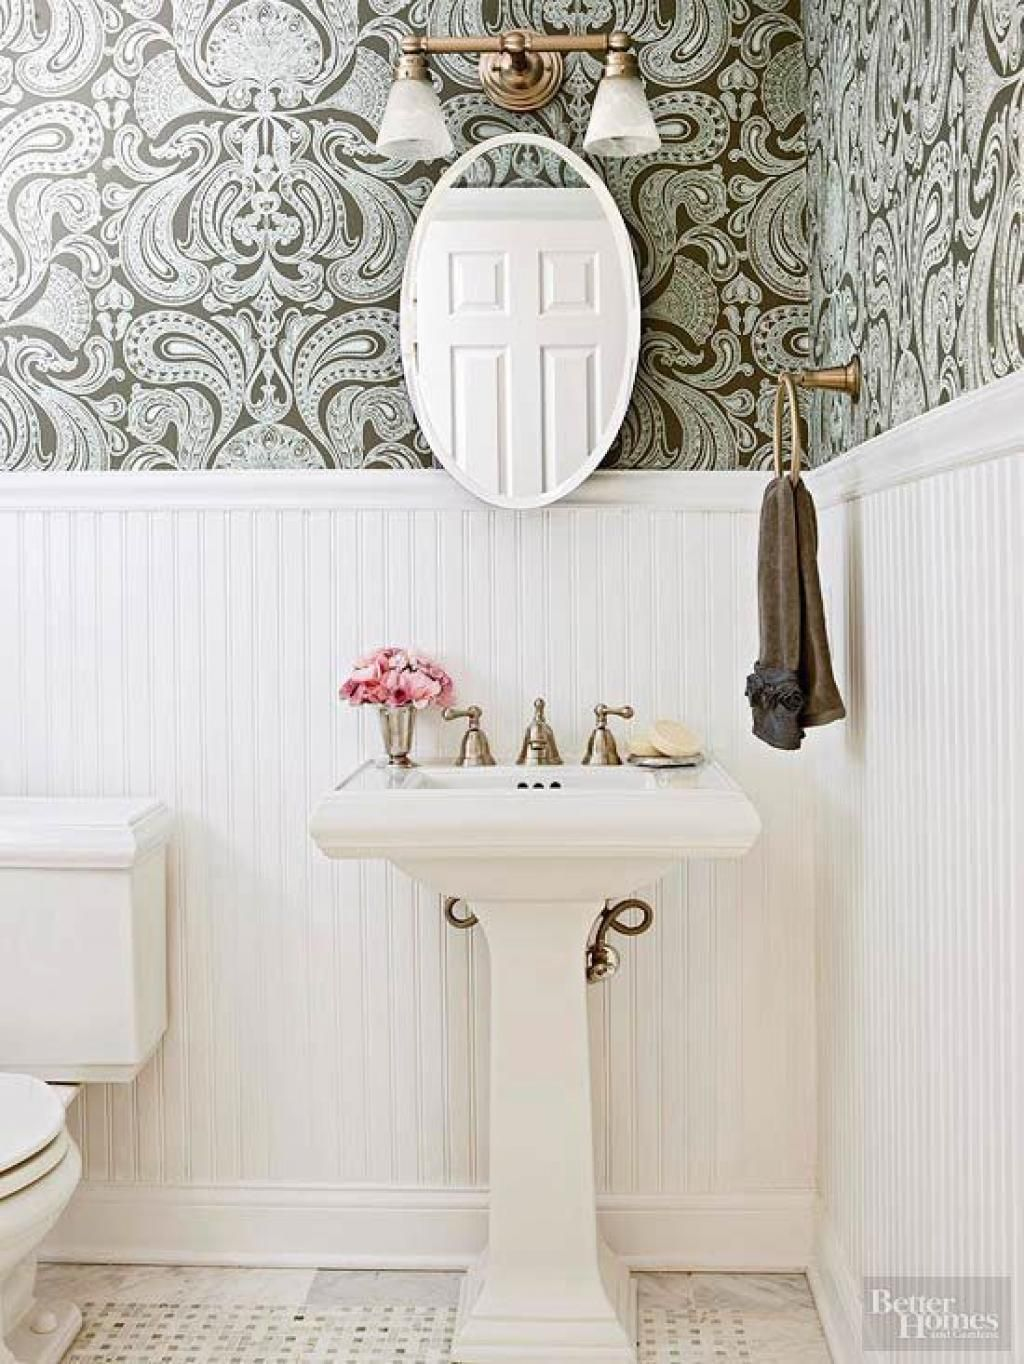 Image Gallery For Website Floral Royal Bathroom Wallpaper Ideas on Small White Modern Bathroom u Home Inspiring